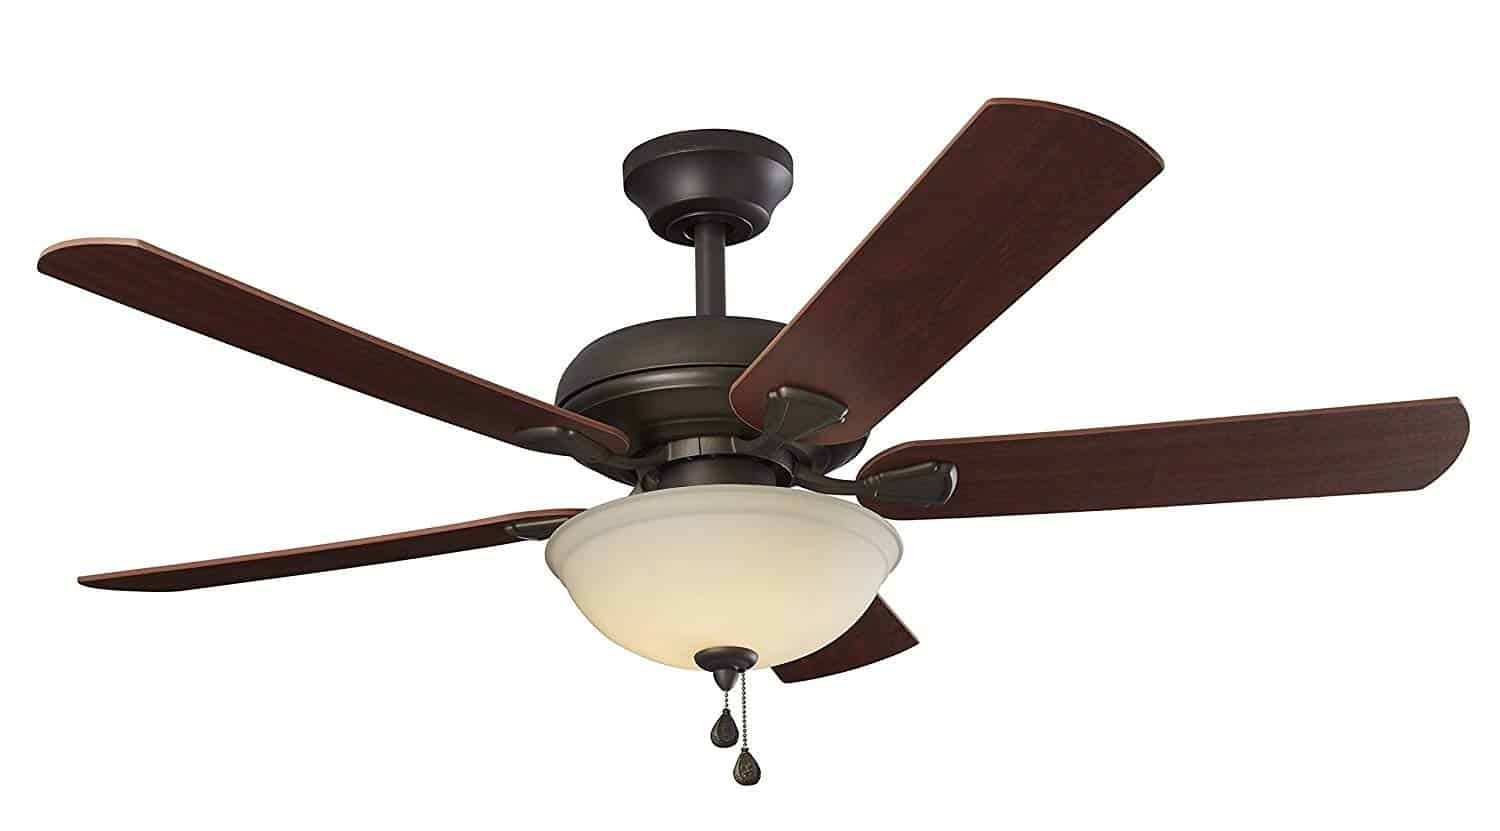 Brightwatts ceiling fan